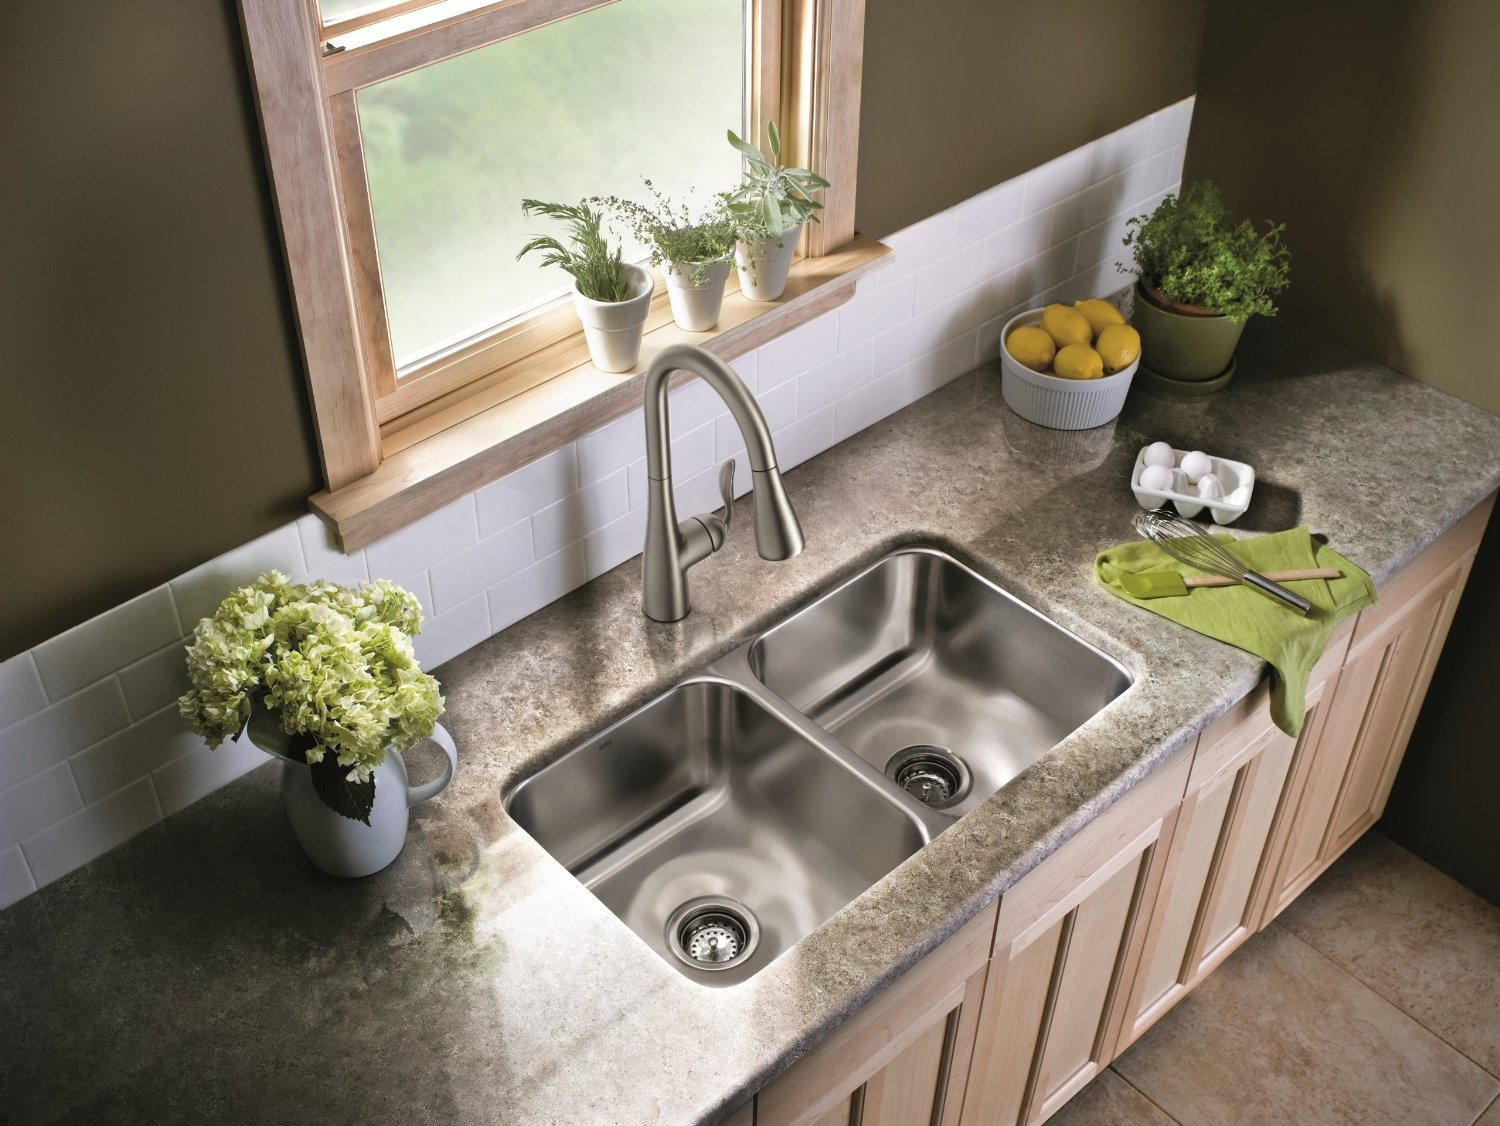 Ideas, best bathroom faucets consumer reports creative bathroom decoration for size 1500 x 1126  .